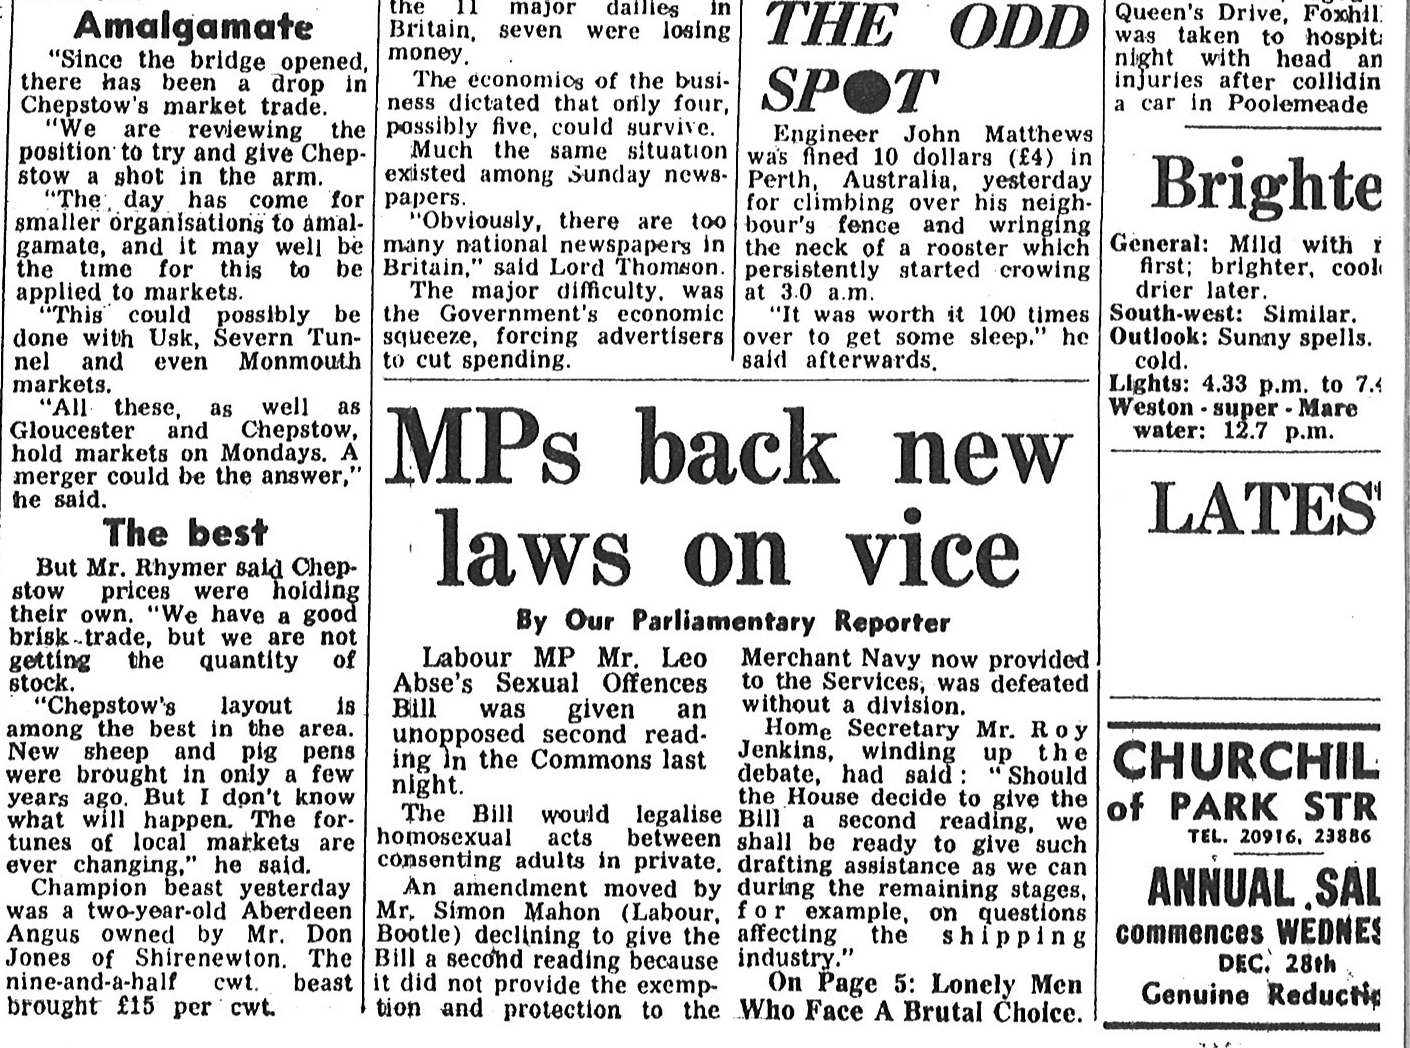 A newspaper article on the Sexual Offences Bill of 1967